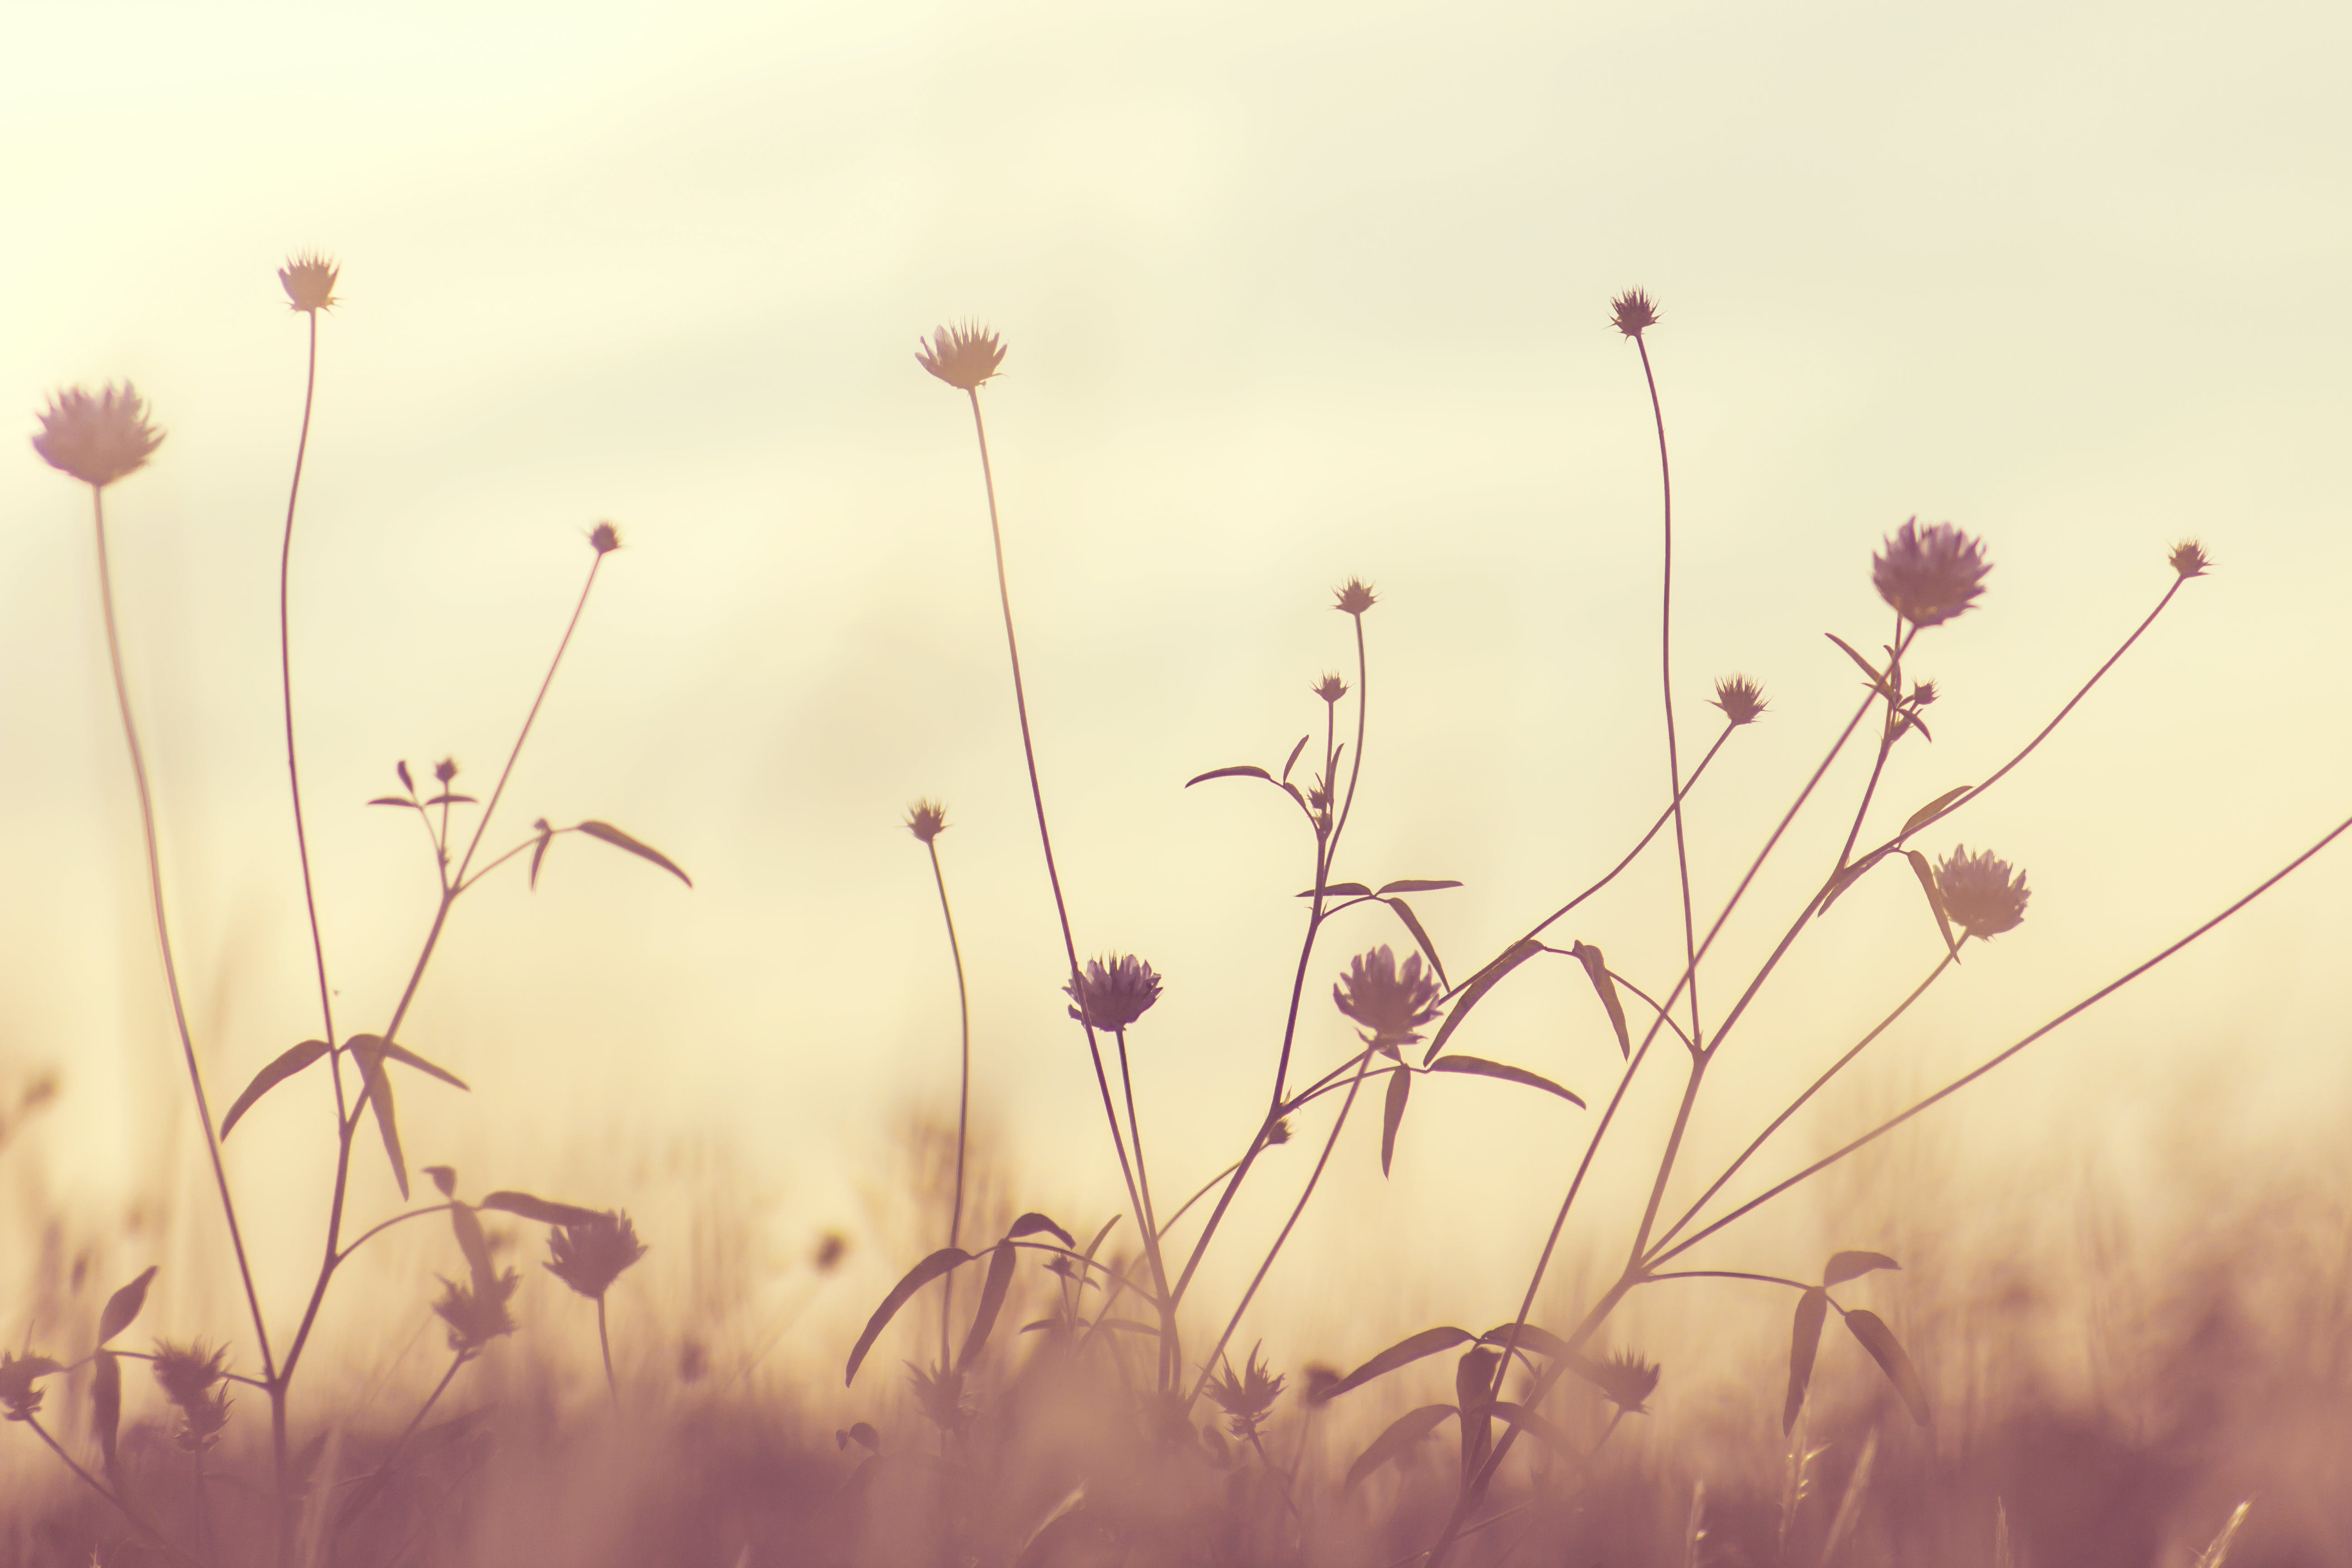 Free stock photo of nature, flowers, plants, bloom